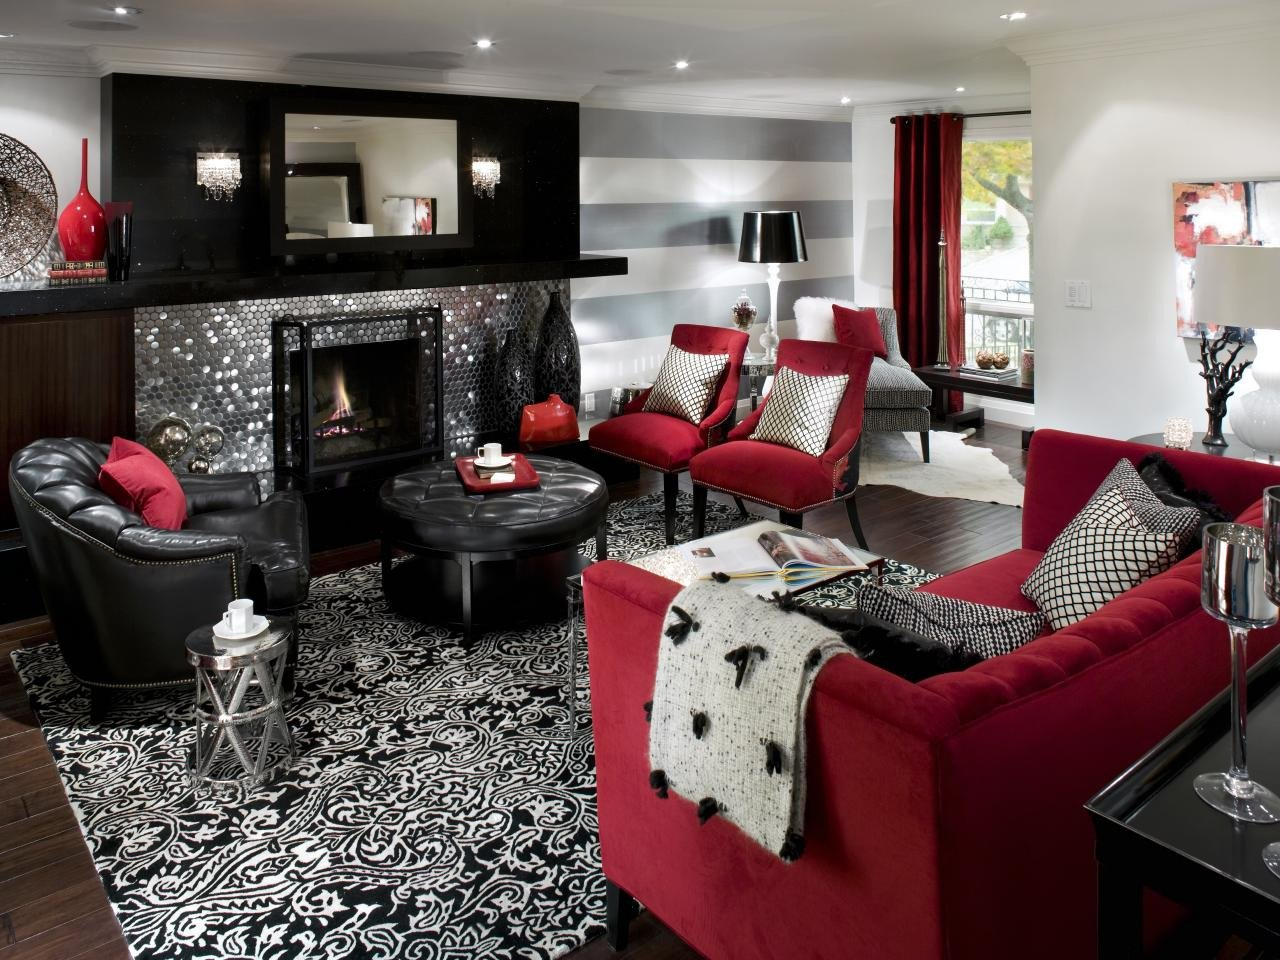 Red Decor for Living Room Lovely Retro Red Black and White Family Room